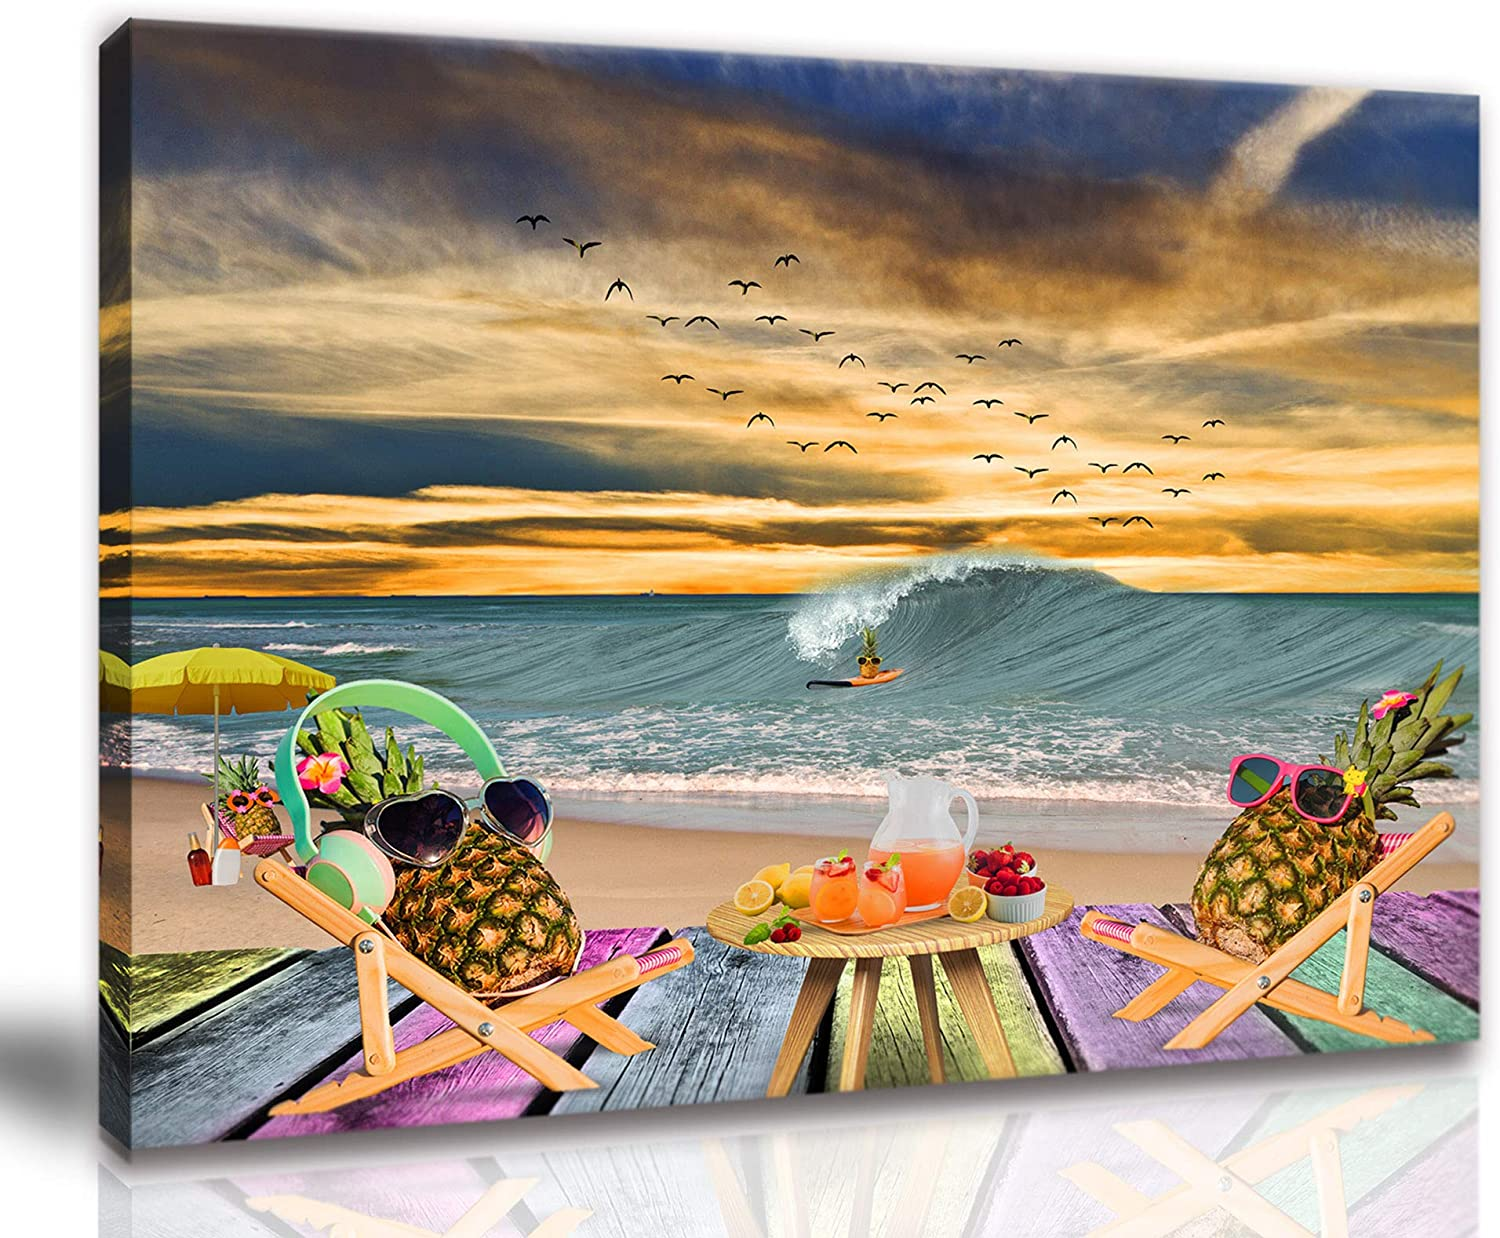 Pineapple Wall Art Pineapple Bathroom Decor Beach Pictures Wall Art Artwork For Home Walls Wooden Picture Frames Beach Theme Bedroom Decor Canvas Wall Art Size 12x16